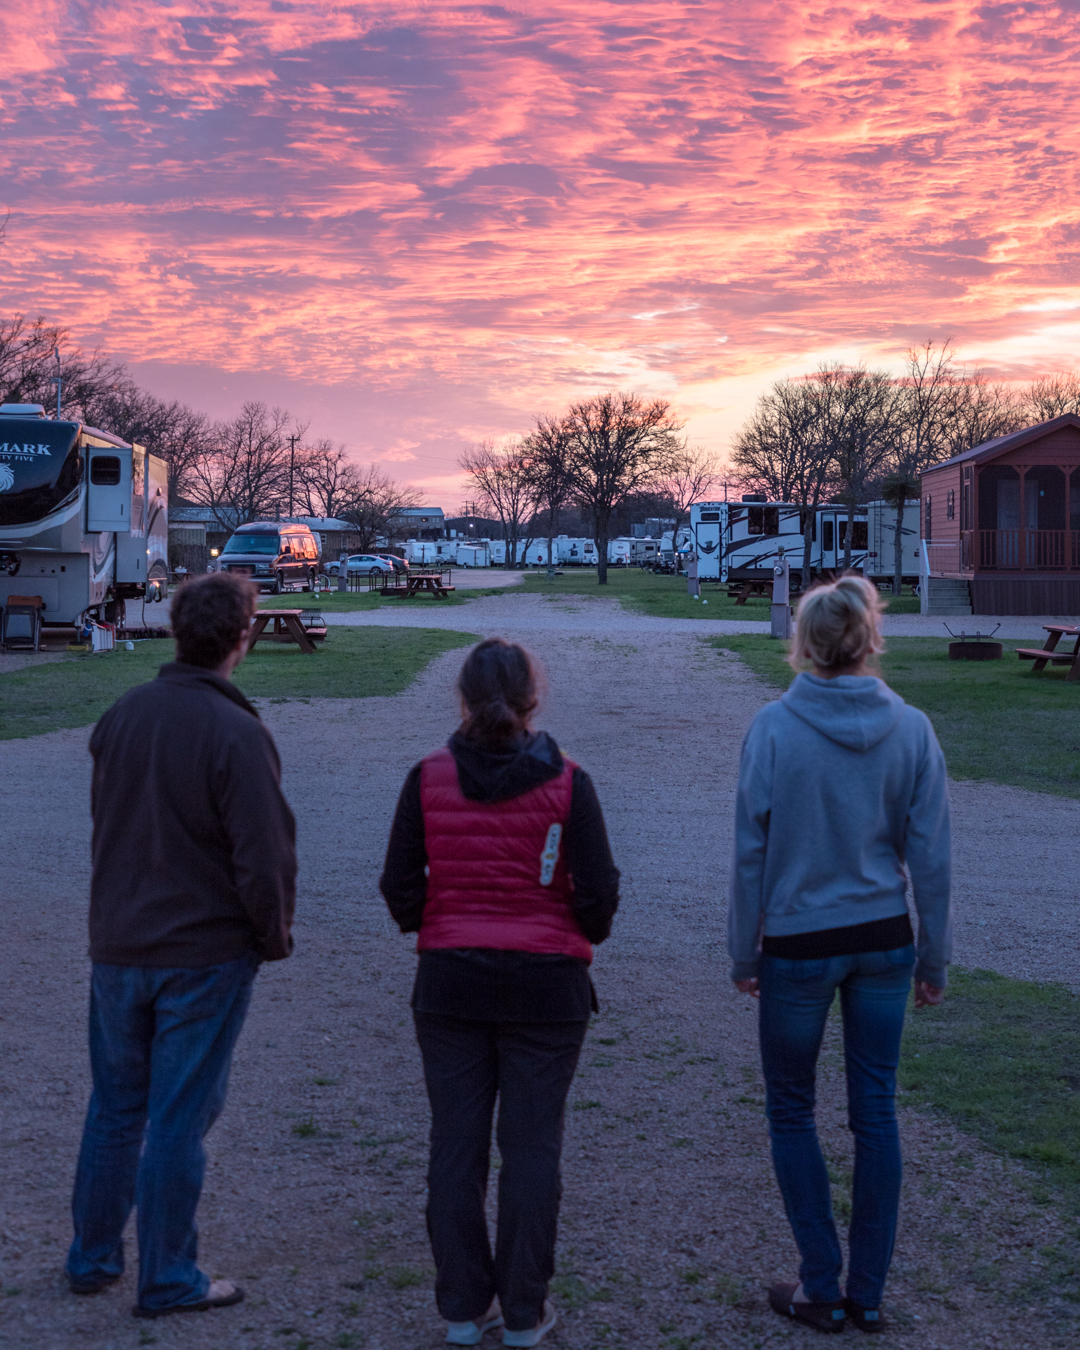 A beautiful sunset at this year's RVE Summit in Fredericksburg, TX with our friends Dan, Camille, and Lindsay.